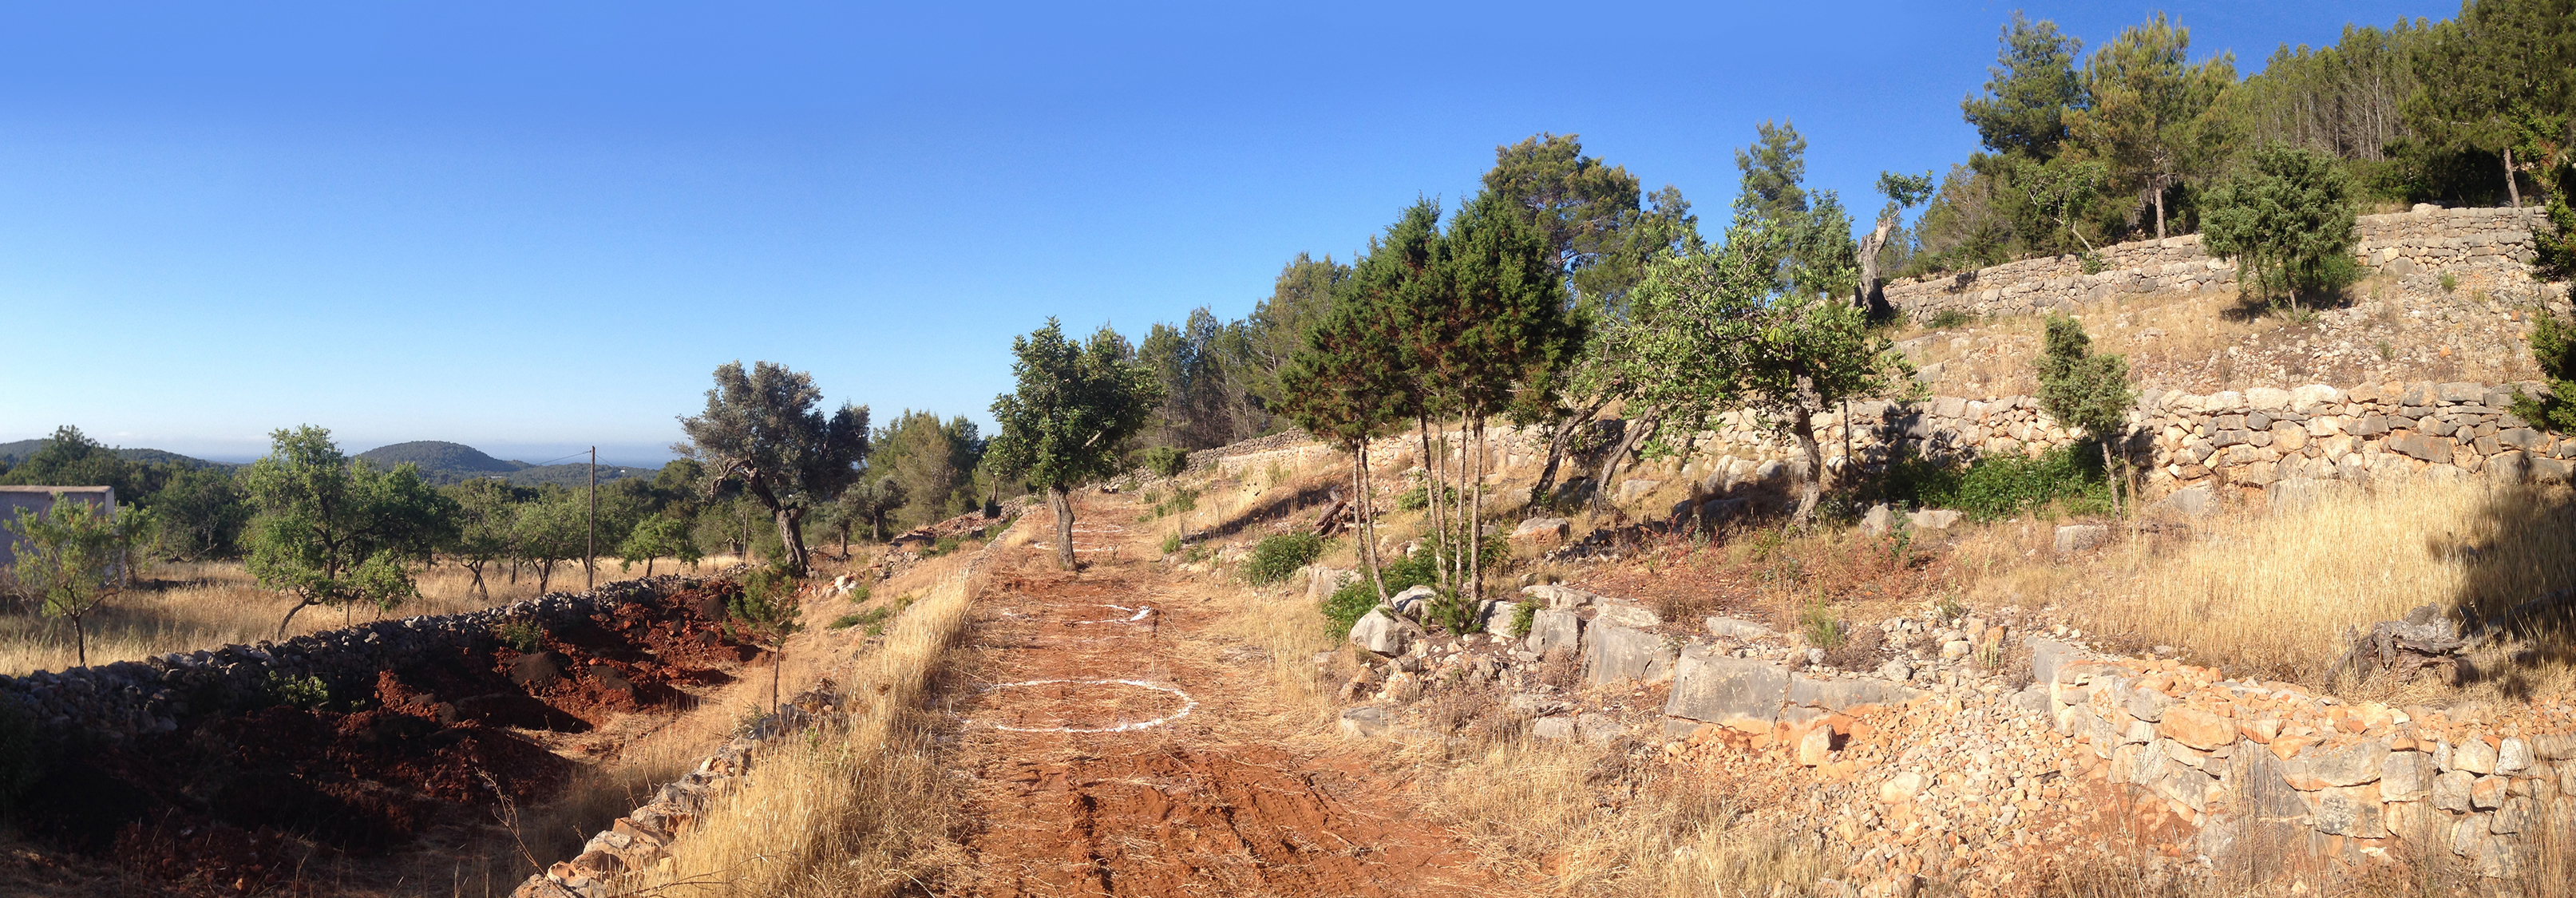 28 Olive trees Ibiza before